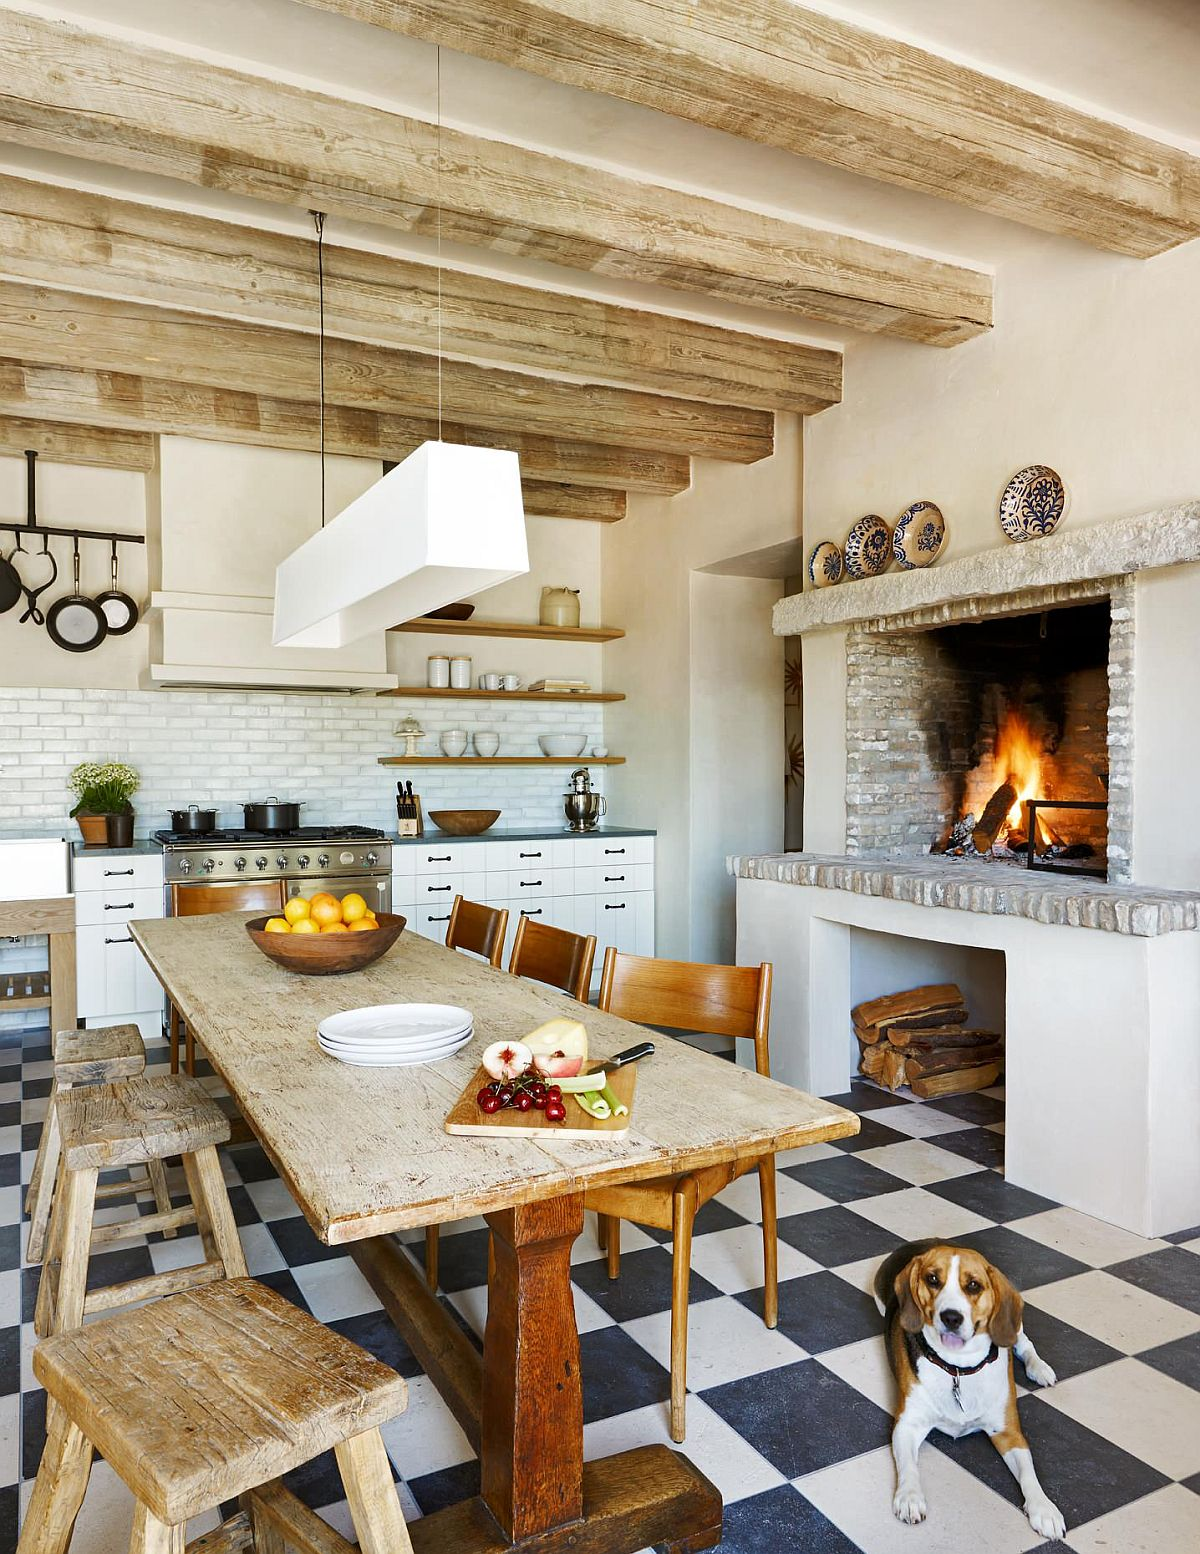 Deligtful and cozy rustic kitchen with a charming fireplace